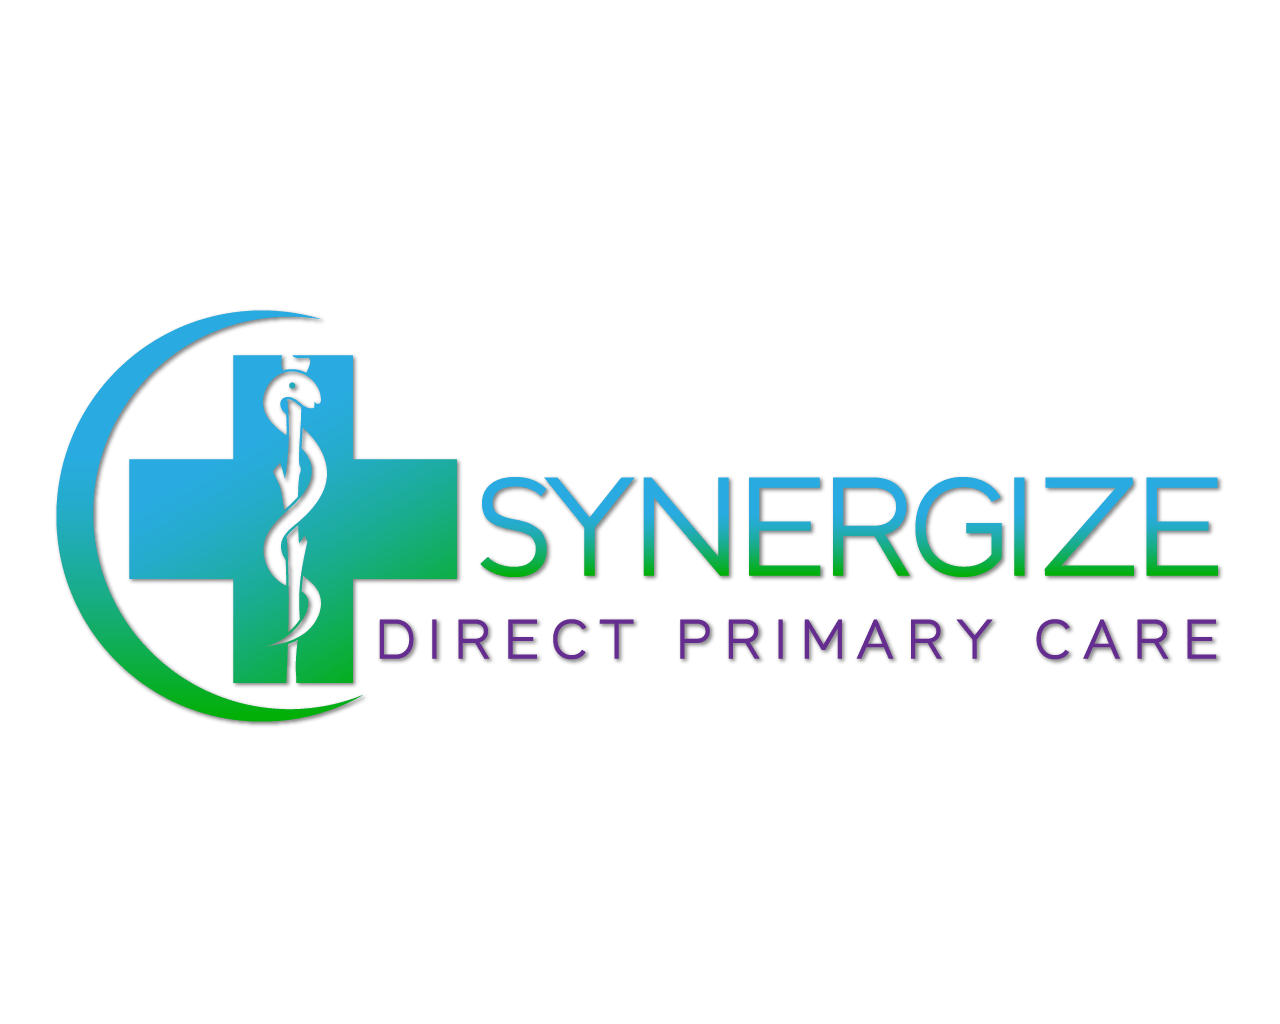 Synergize Direct Primary Care